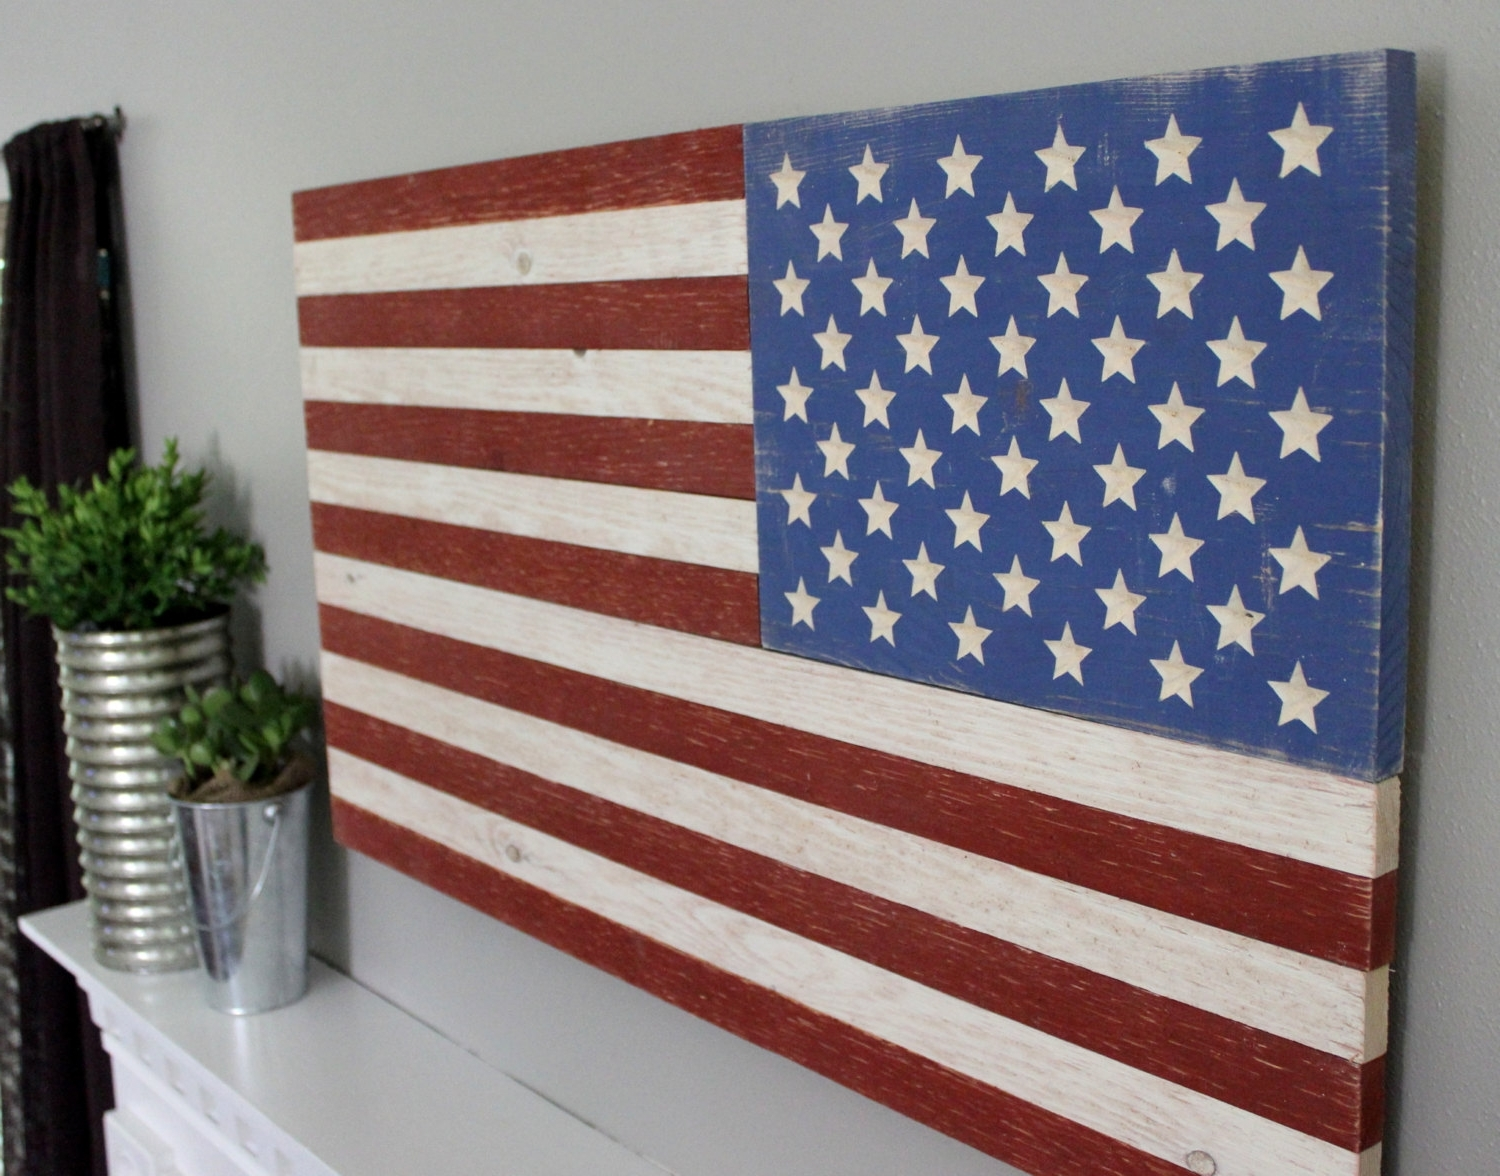 Rustic Wooden American Flag Superb American Flag Wall Art – Prix With Regard To Most Current Wooden American Flag Wall Art (View 7 of 15)